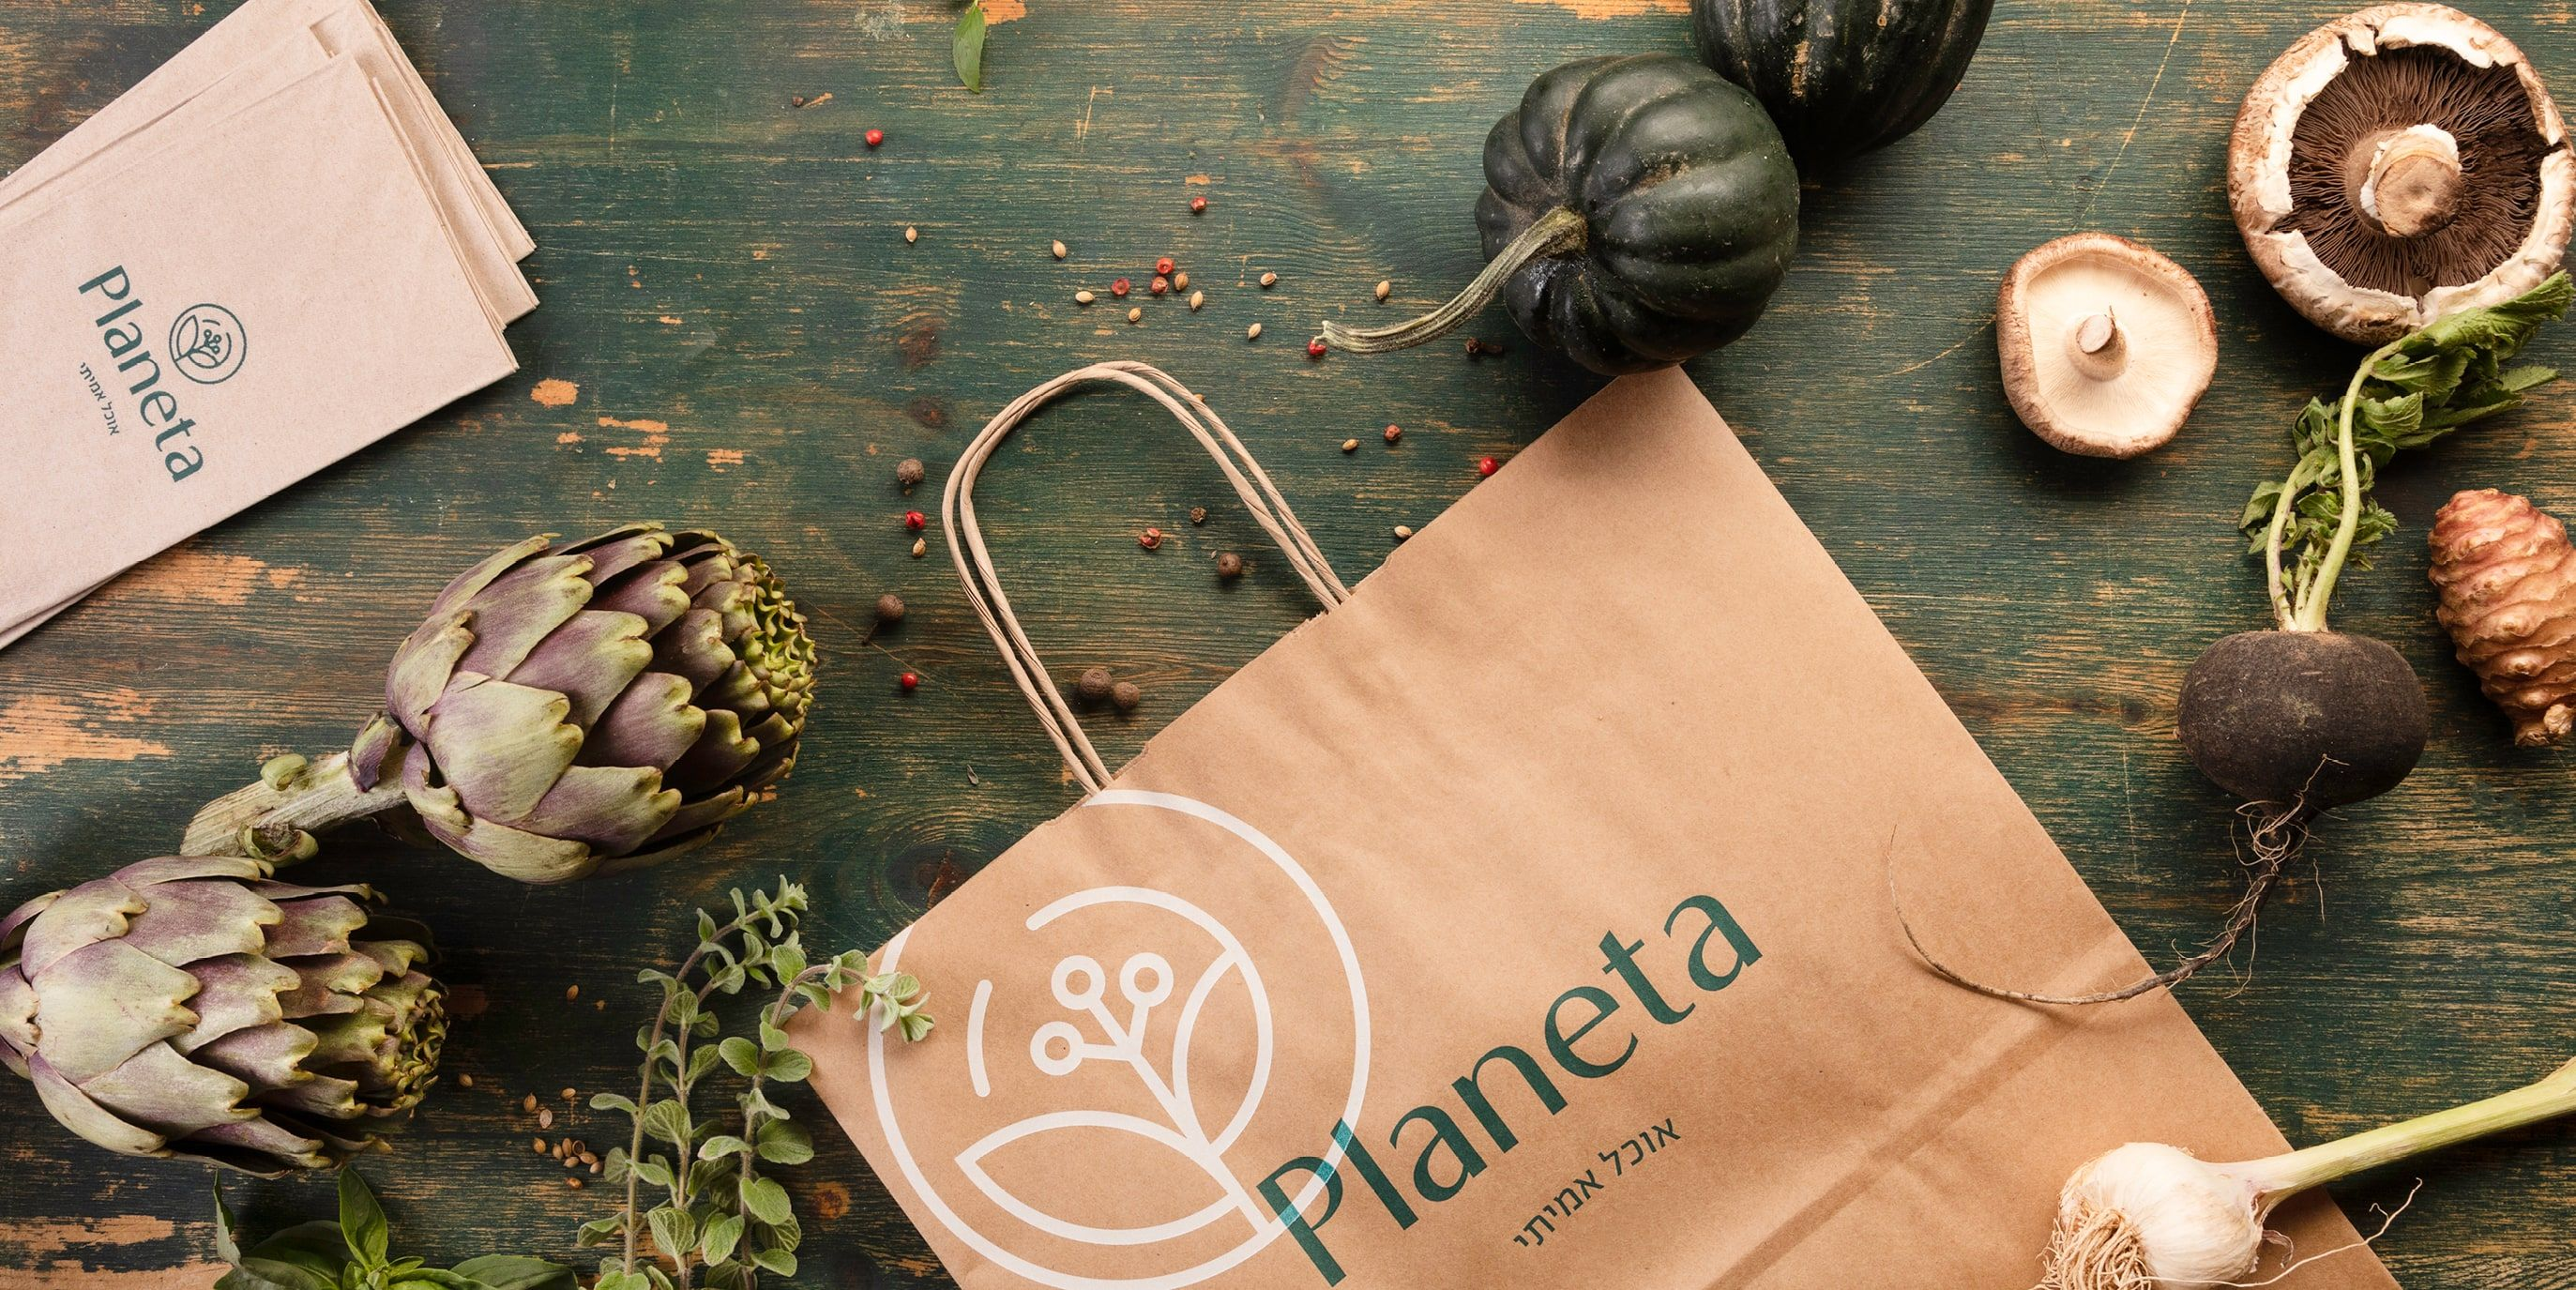 Branded Planeta bag, fresh vegetables